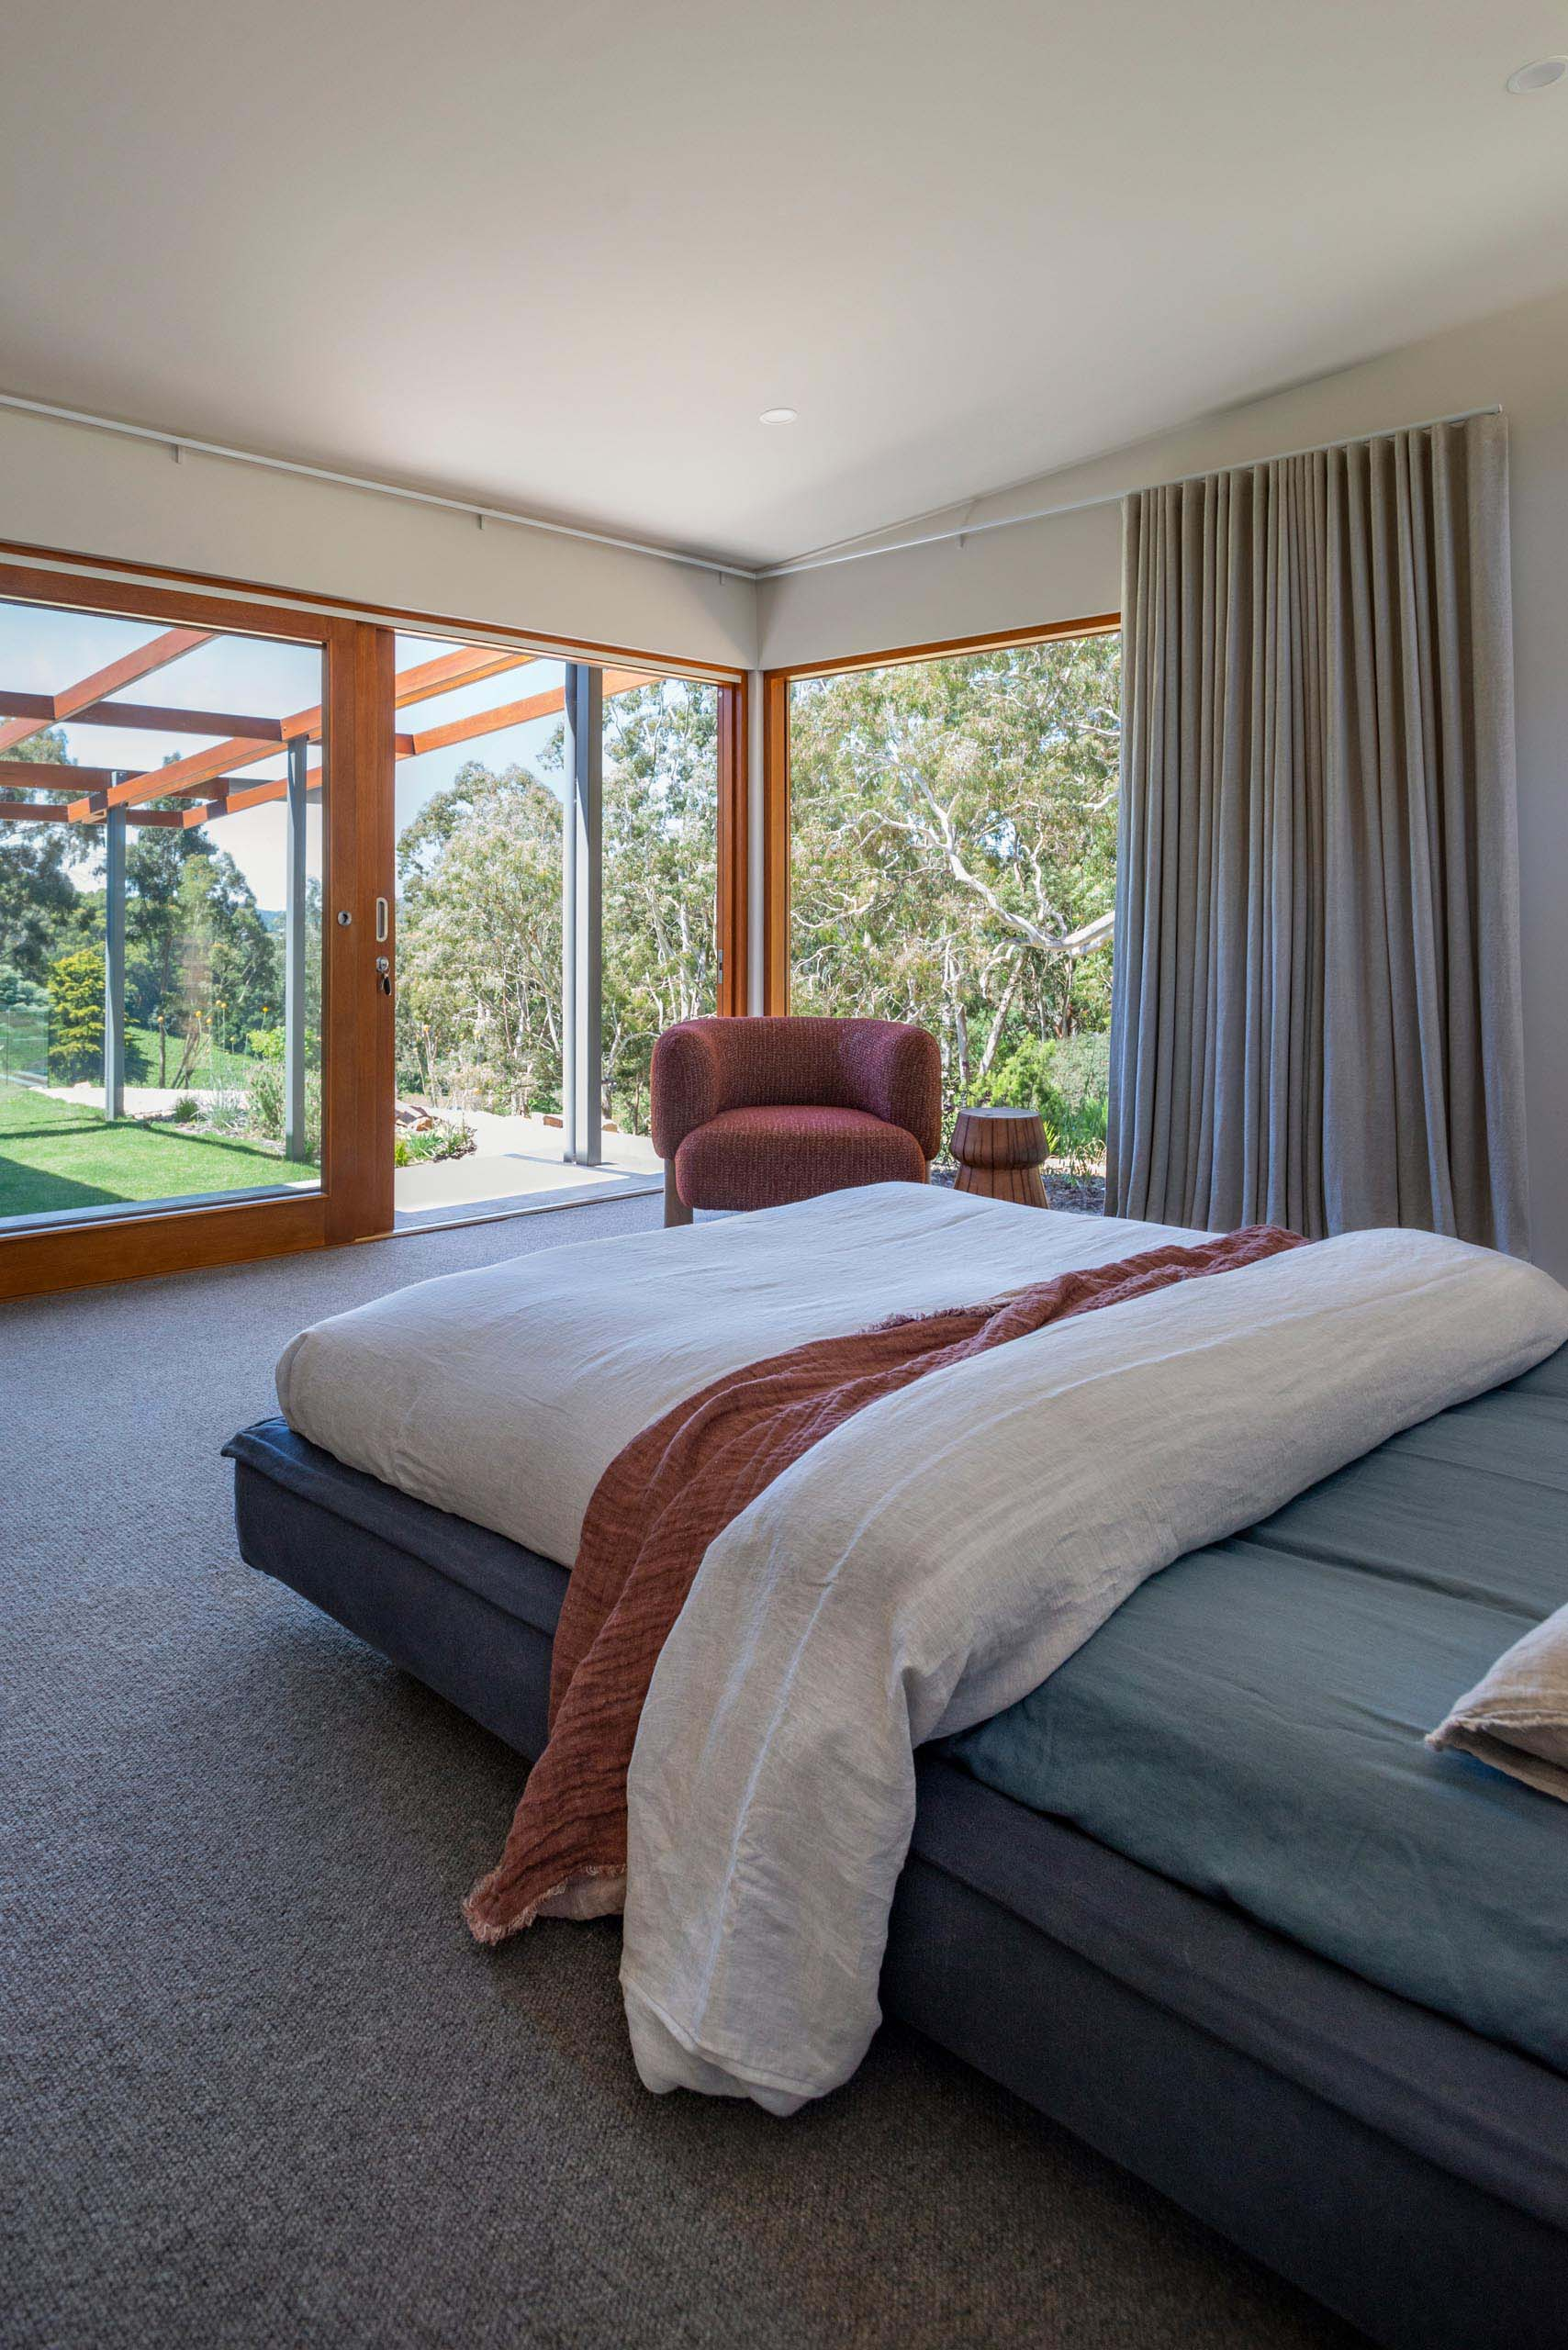 Large windows and a sliding door provide an uninterrupted tree view in a modern bedroom.